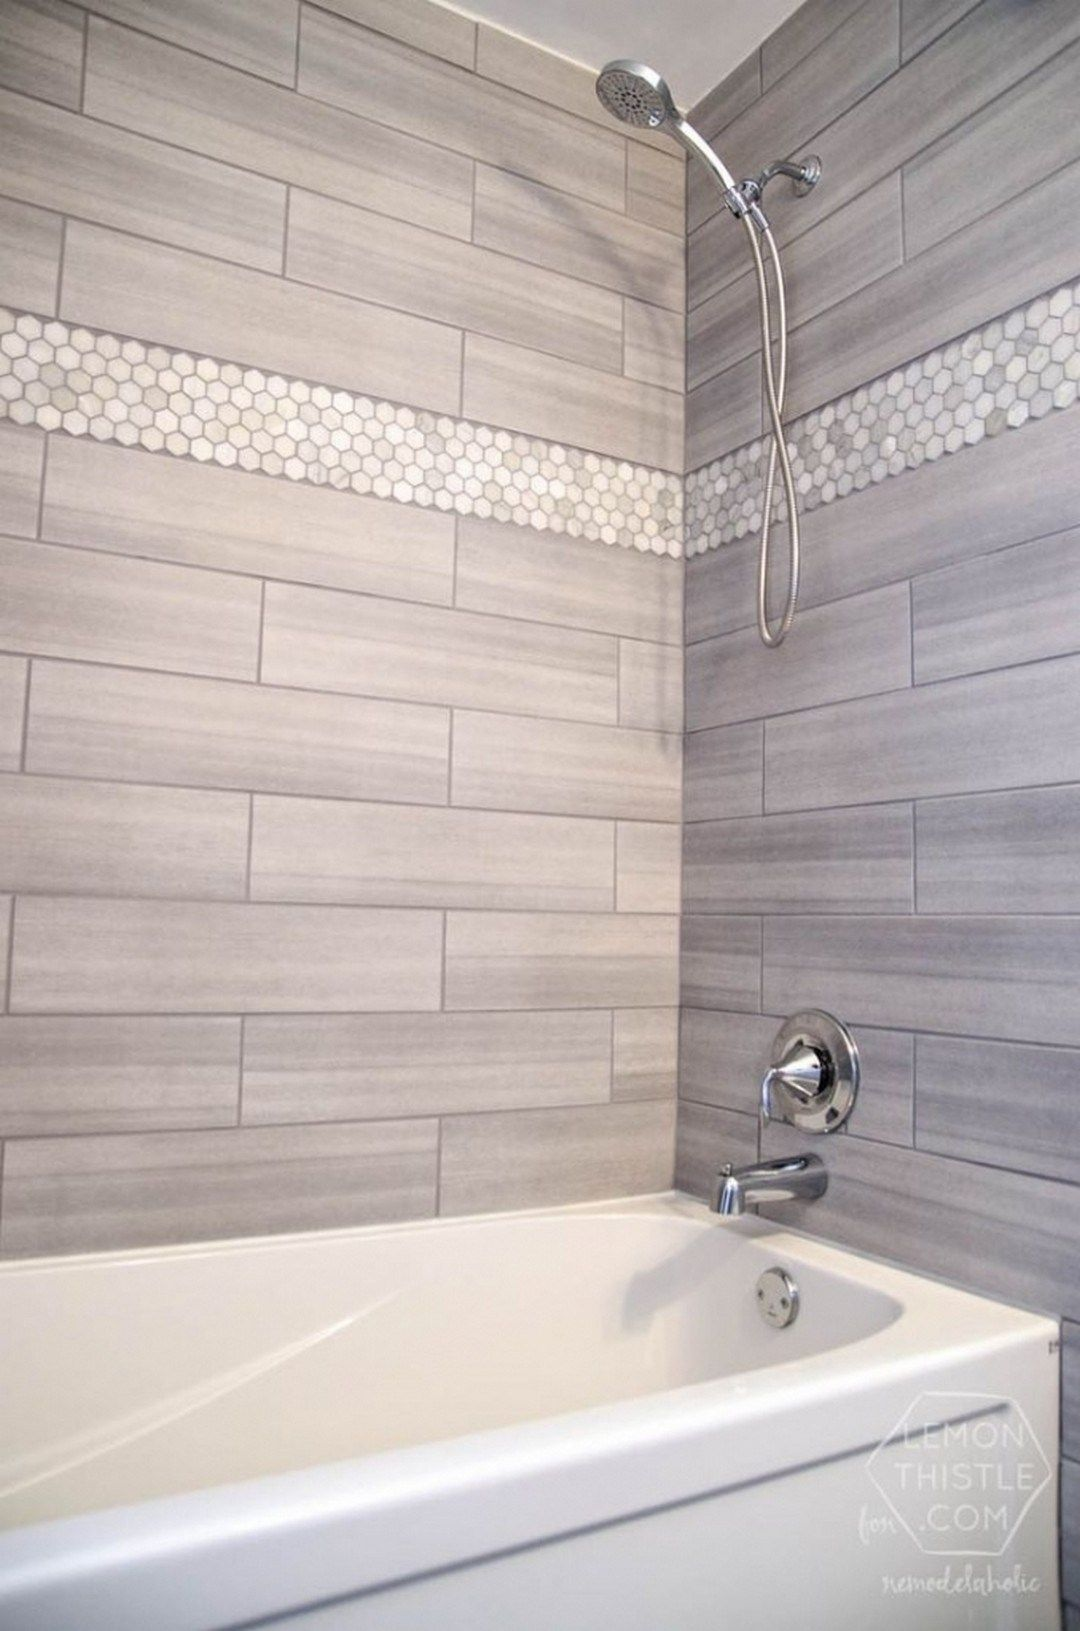 99 New Trends Bathroom Tile Design Inspiration